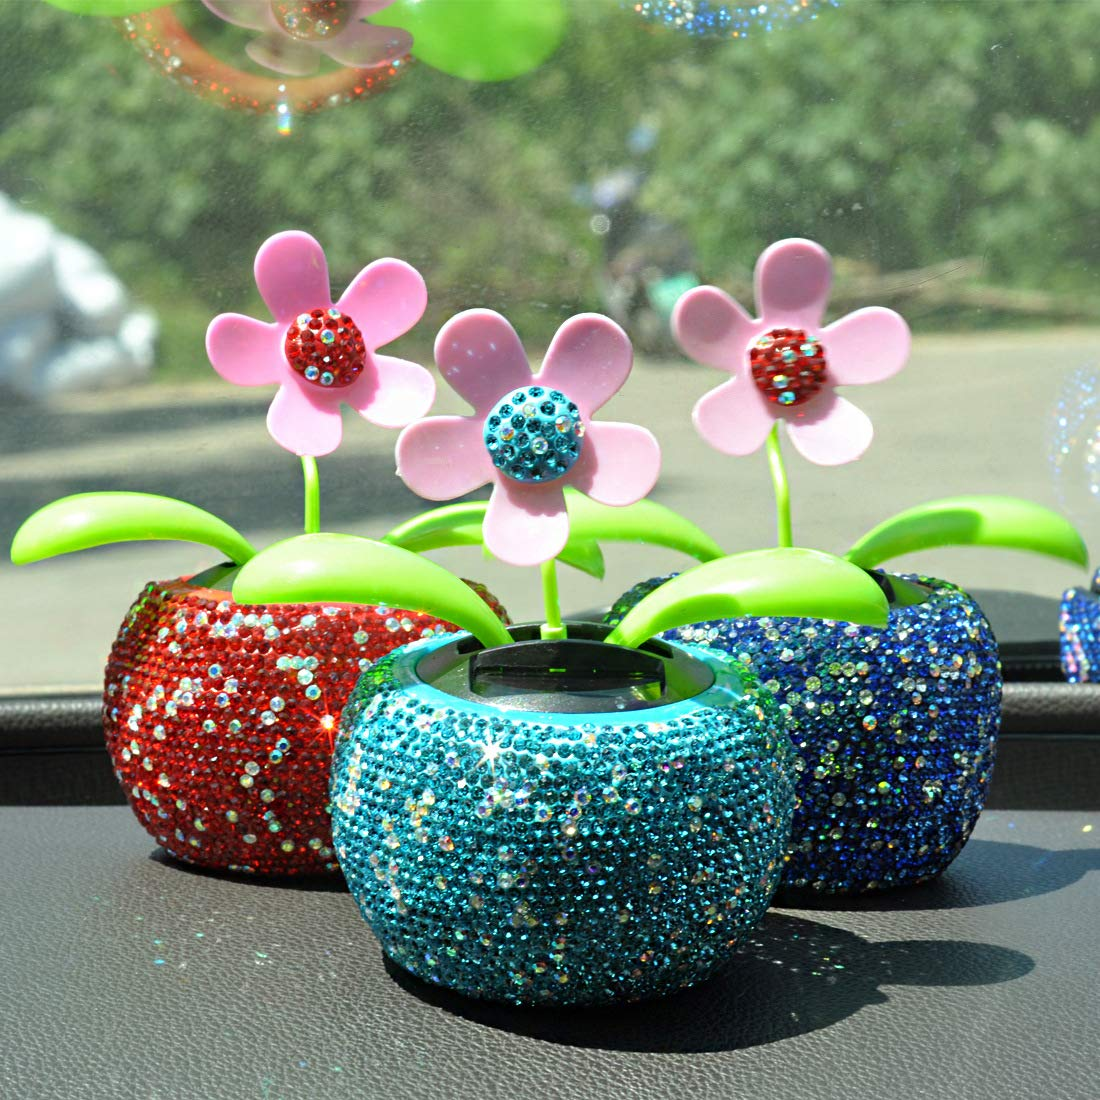 Light Blue Car Interior Decor No battery required Dotesy Bling Bling Solar Dancing Flower Crystal Decoration Gift